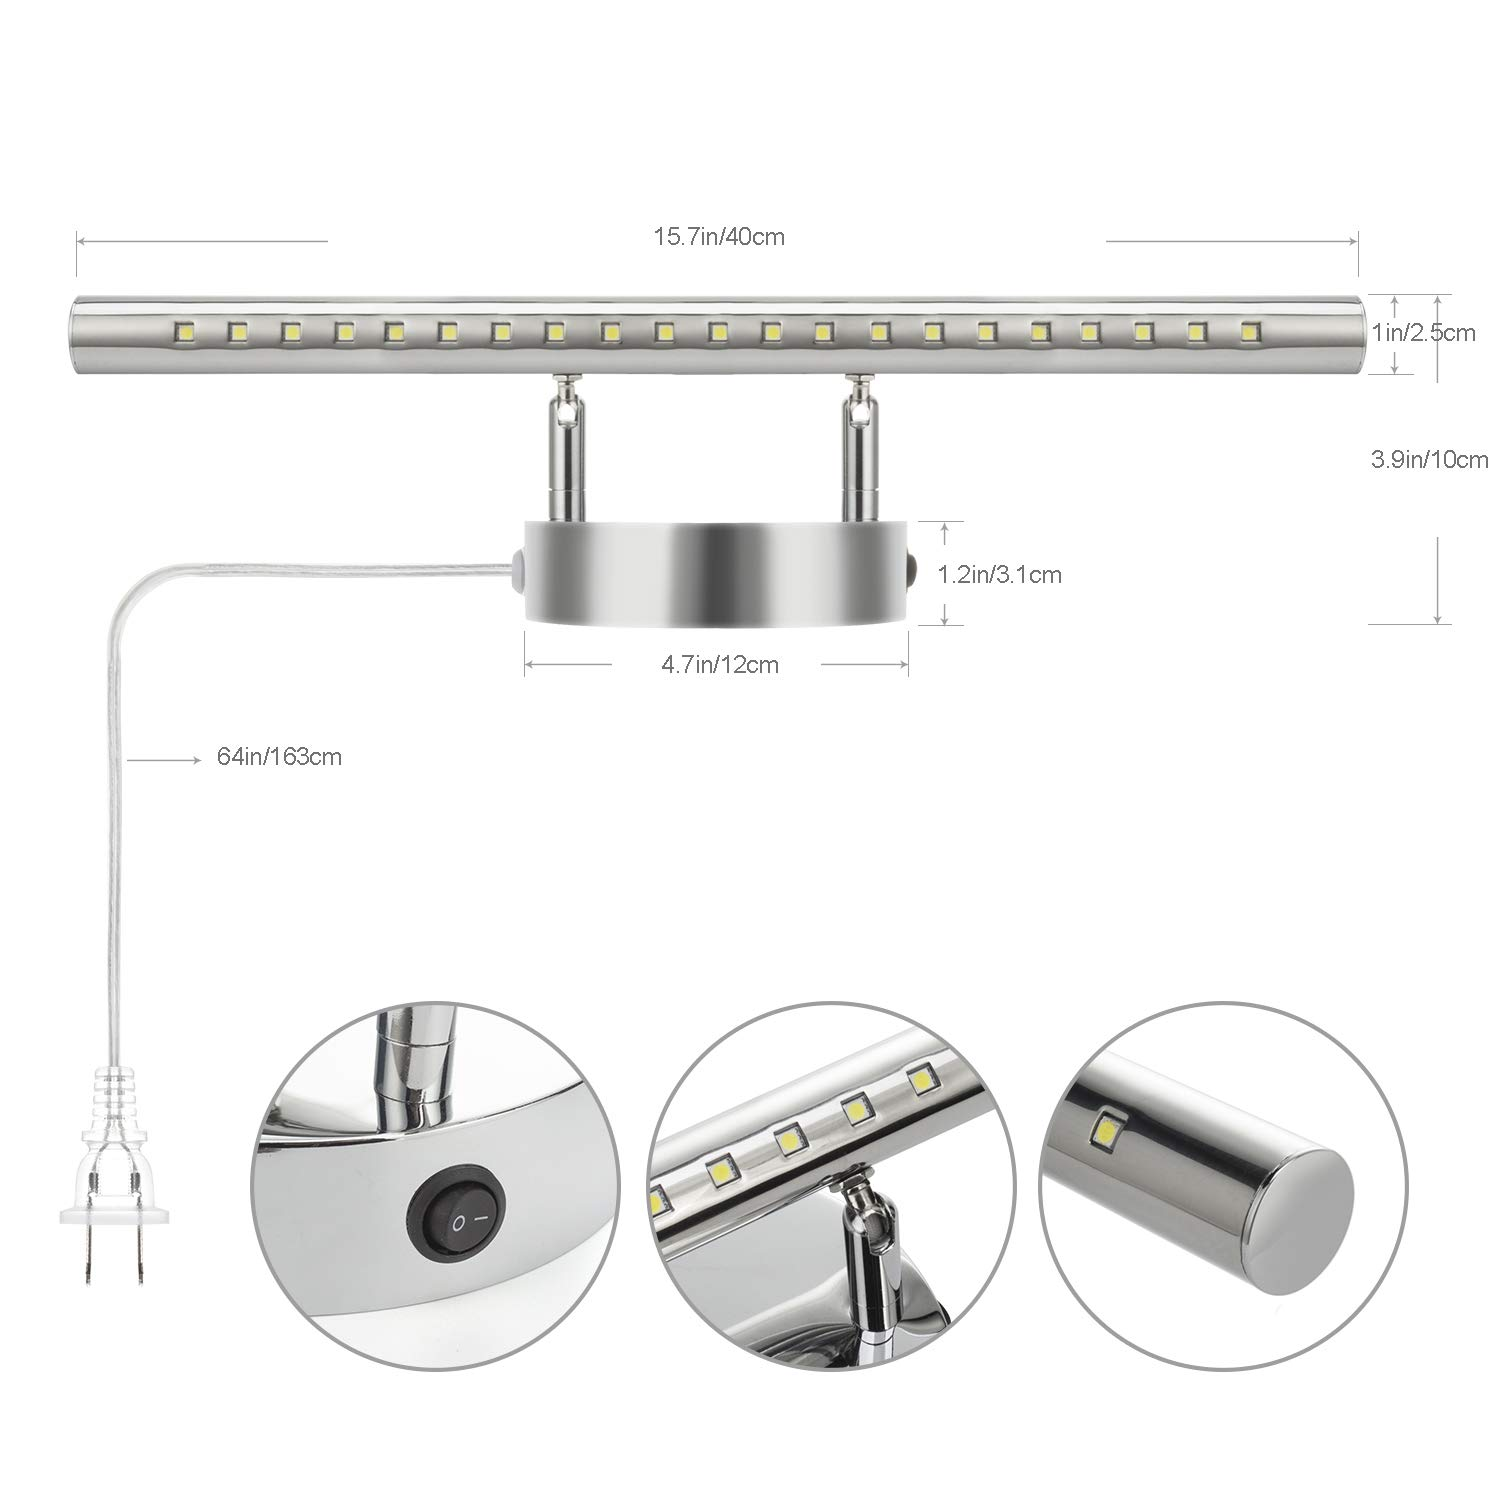 LED Bathroom Vanity Light Fixtures with on/Off Switch ...